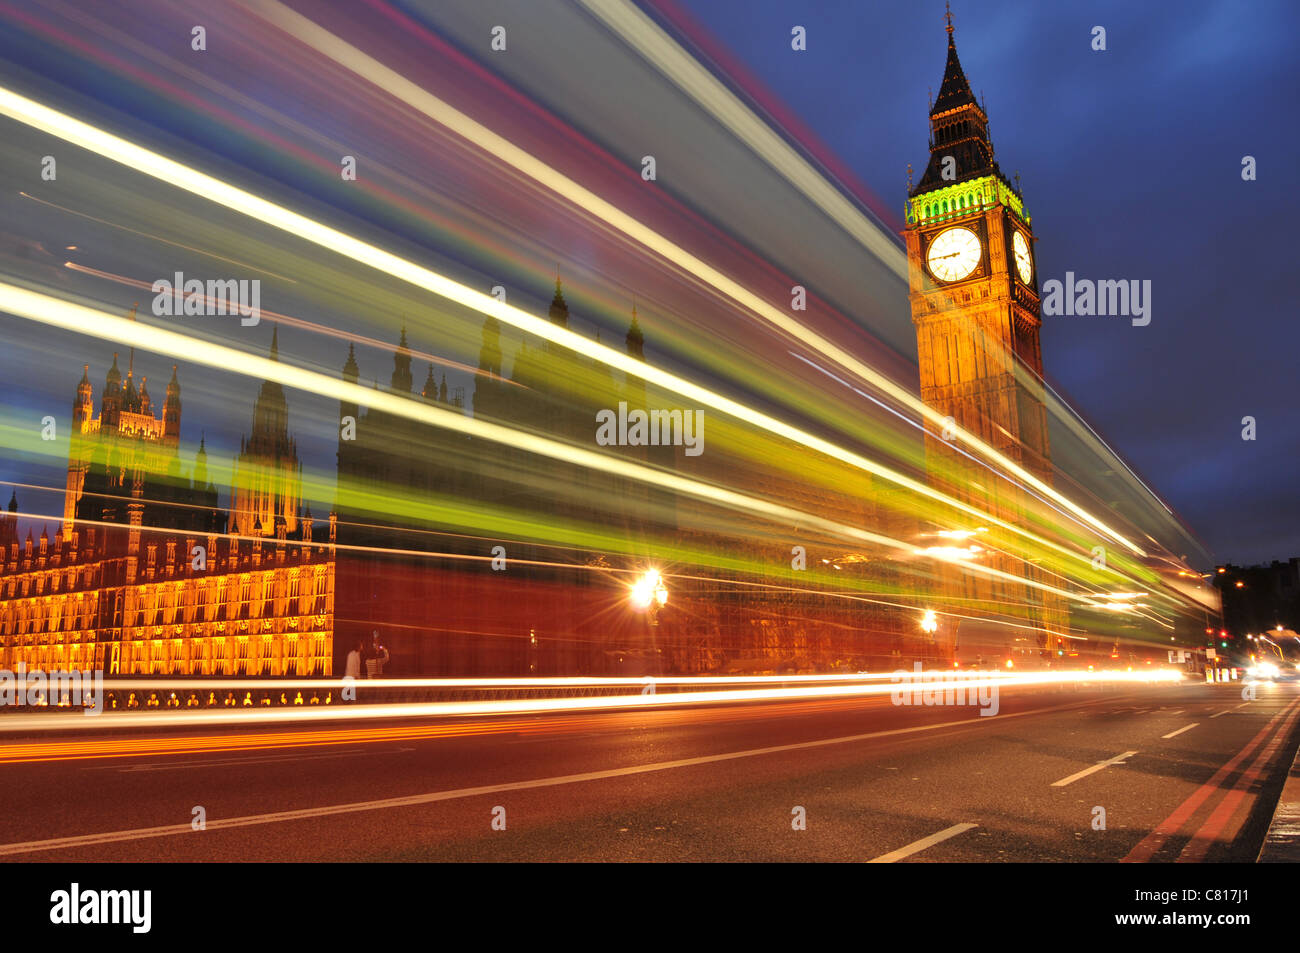 London by night - Stock Image